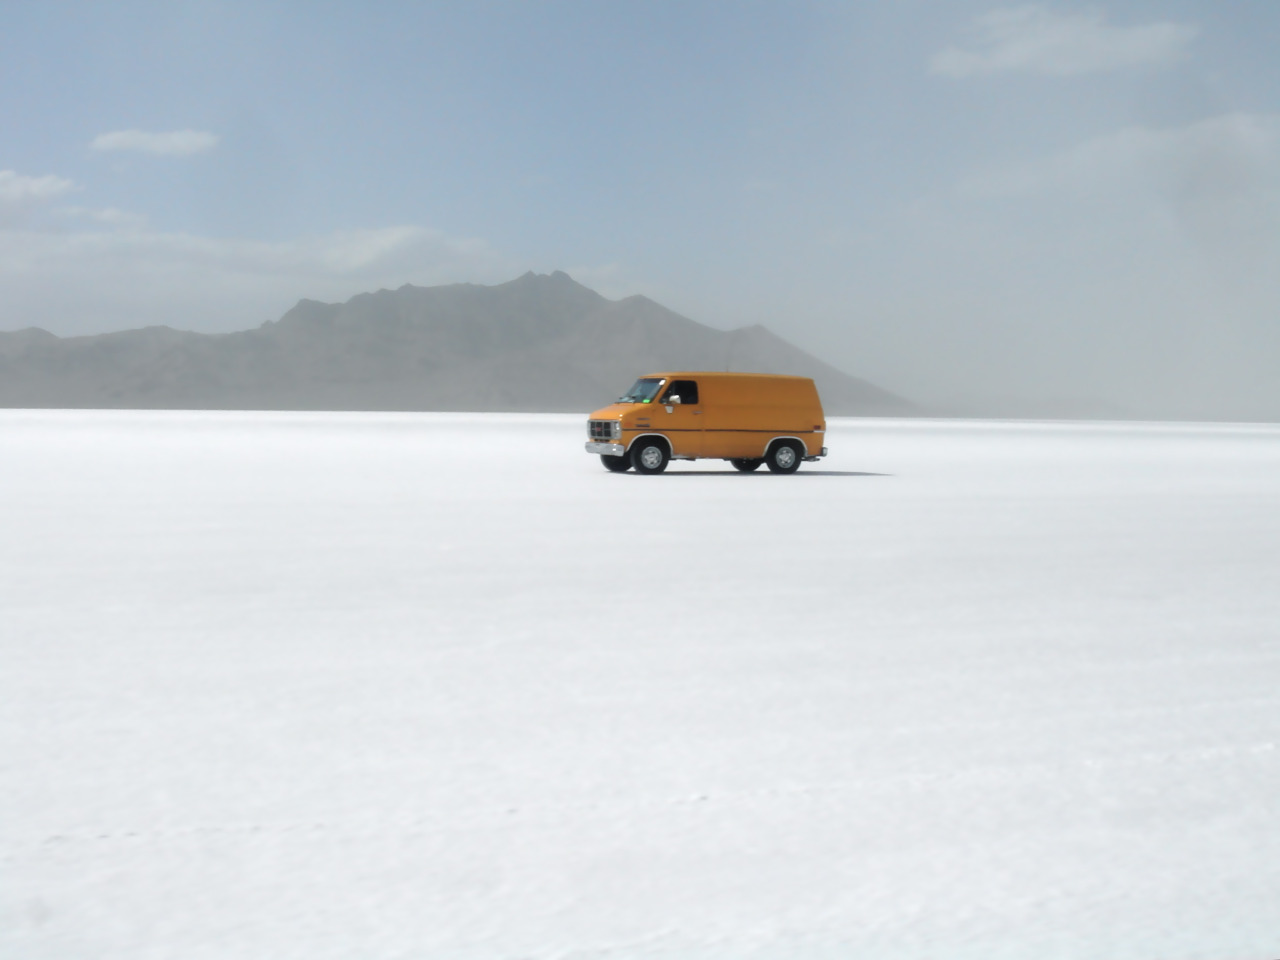 stephanegoin :     Salt lake City / UT     Actually, well west of SLC: this is the Bonneville Salt Flats, a flat white desert of salt crystals west of the Great Salt Lake where most of the world's land speed records have been set. I do not believe that's what this orange GMC van is up to, though.